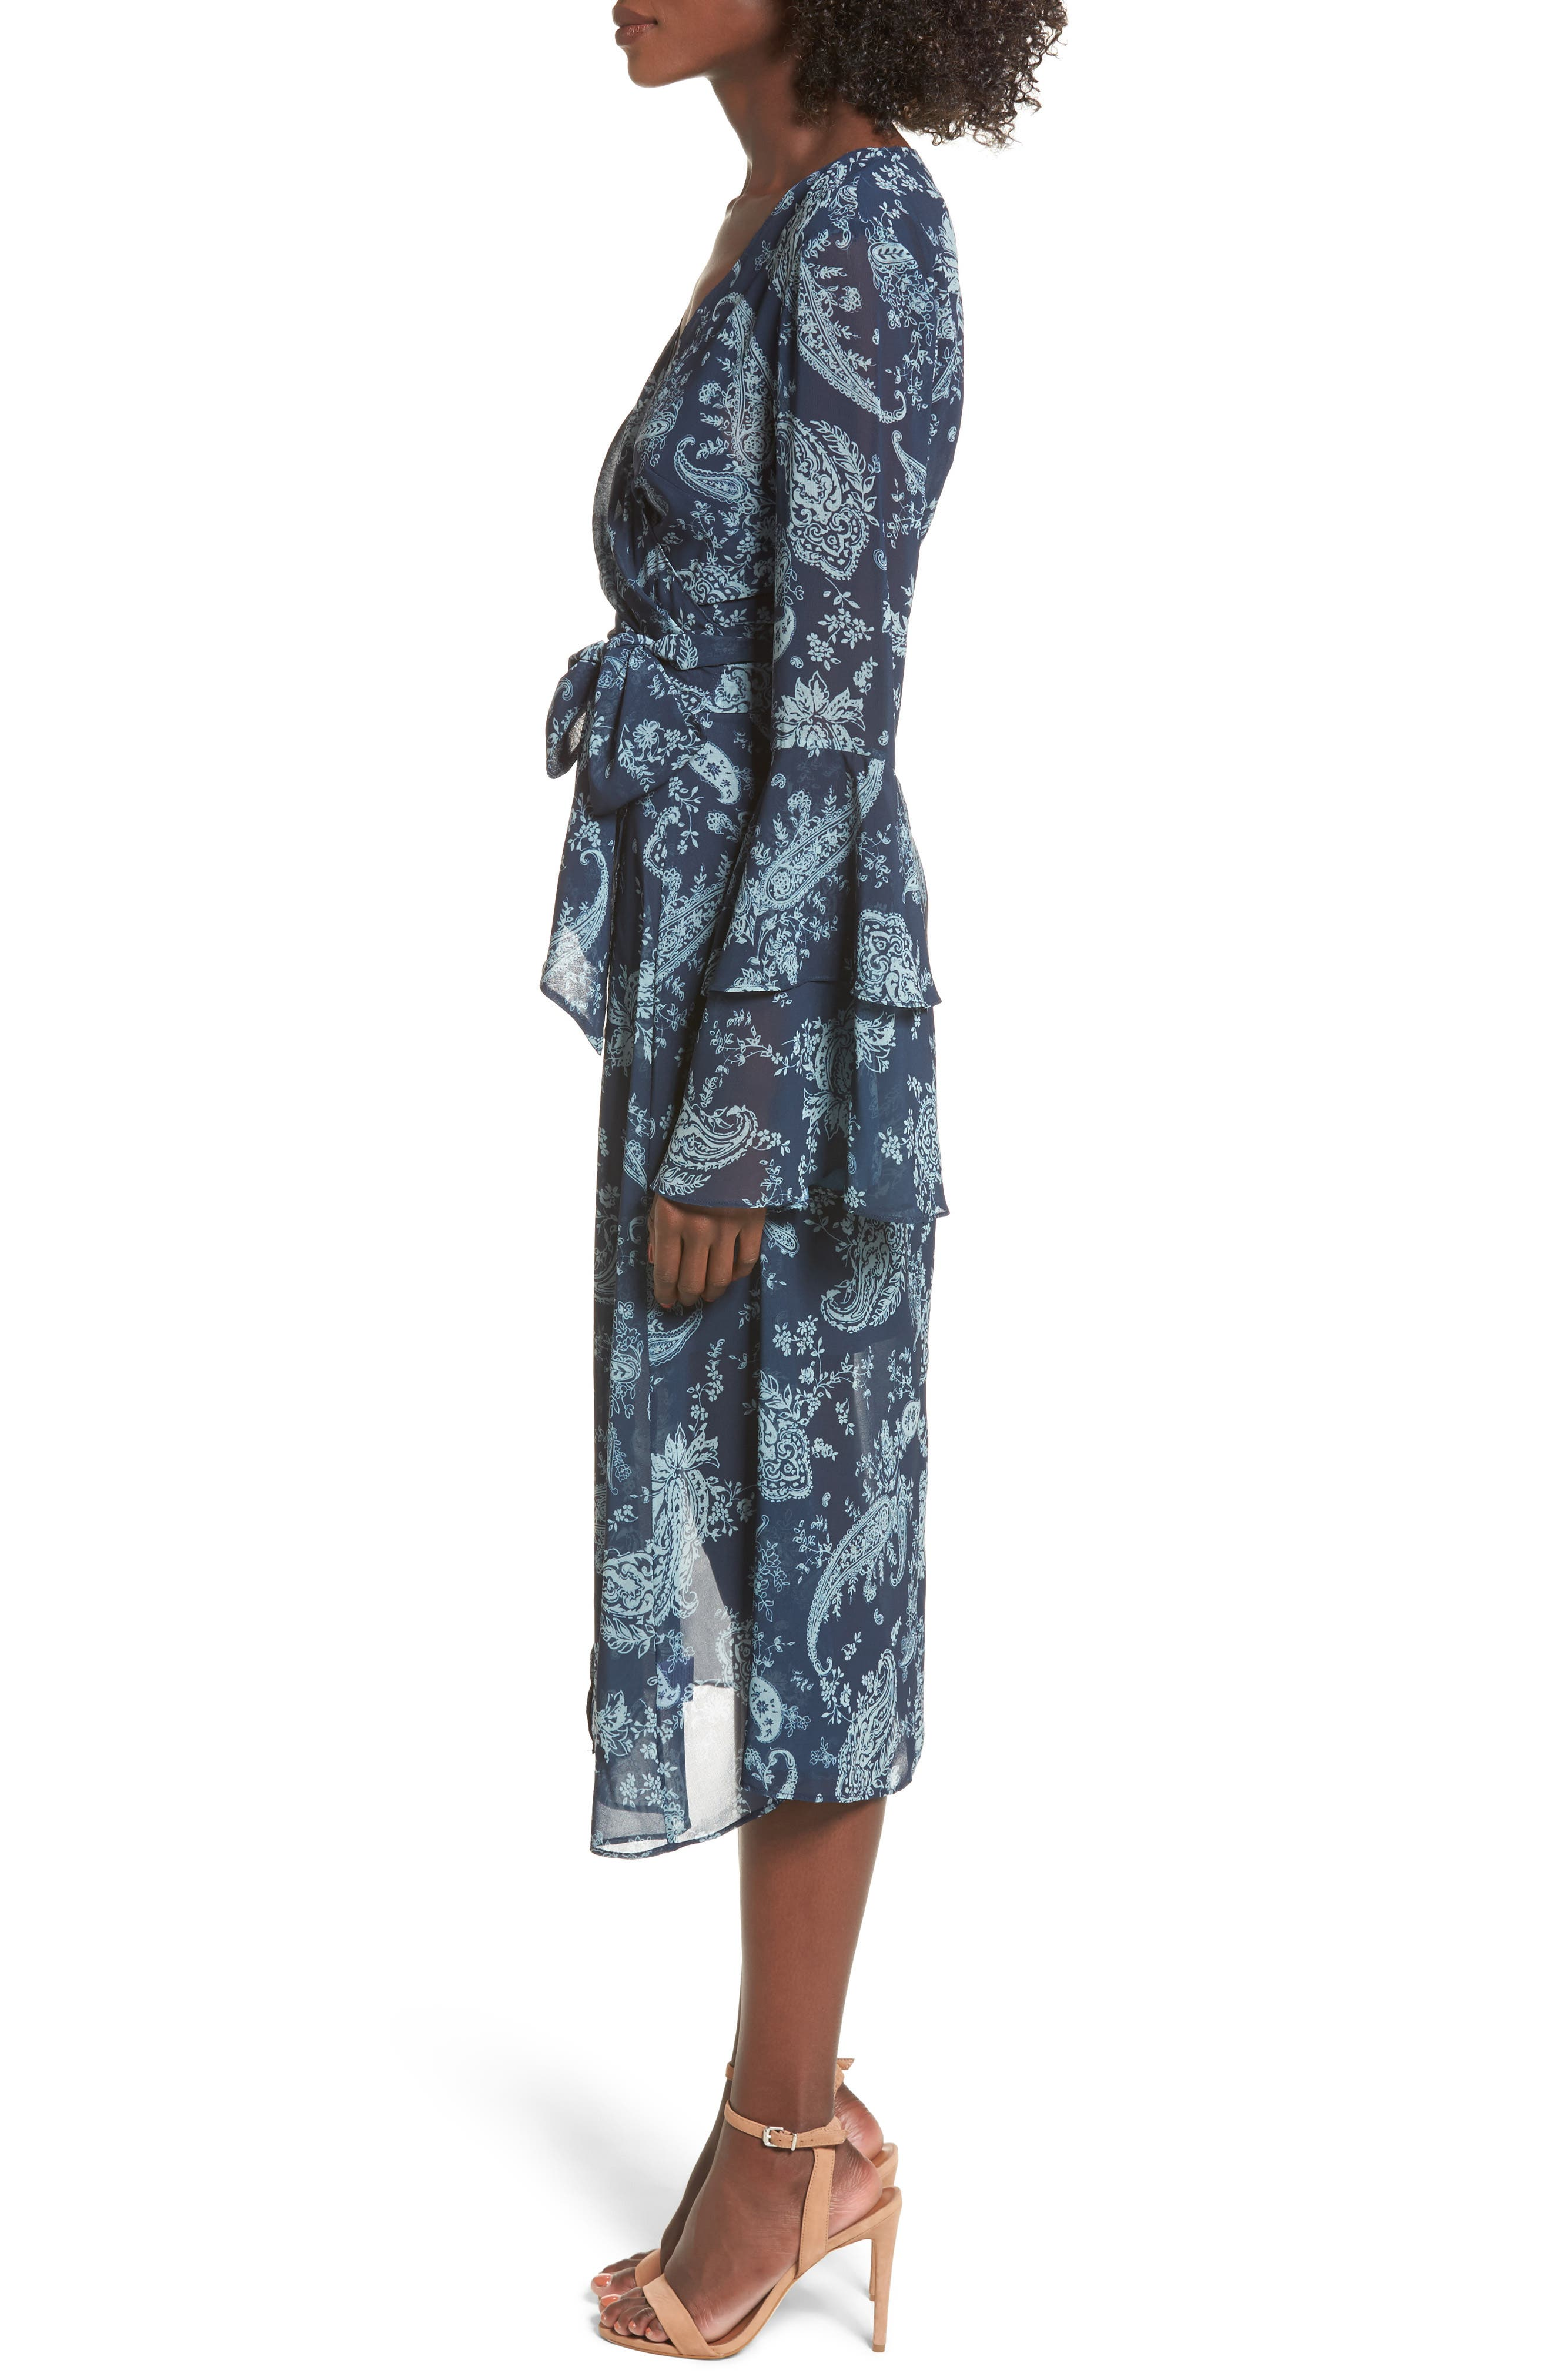 Go With It Wrap Midi Dress,                             Alternate thumbnail 3, color,                             401